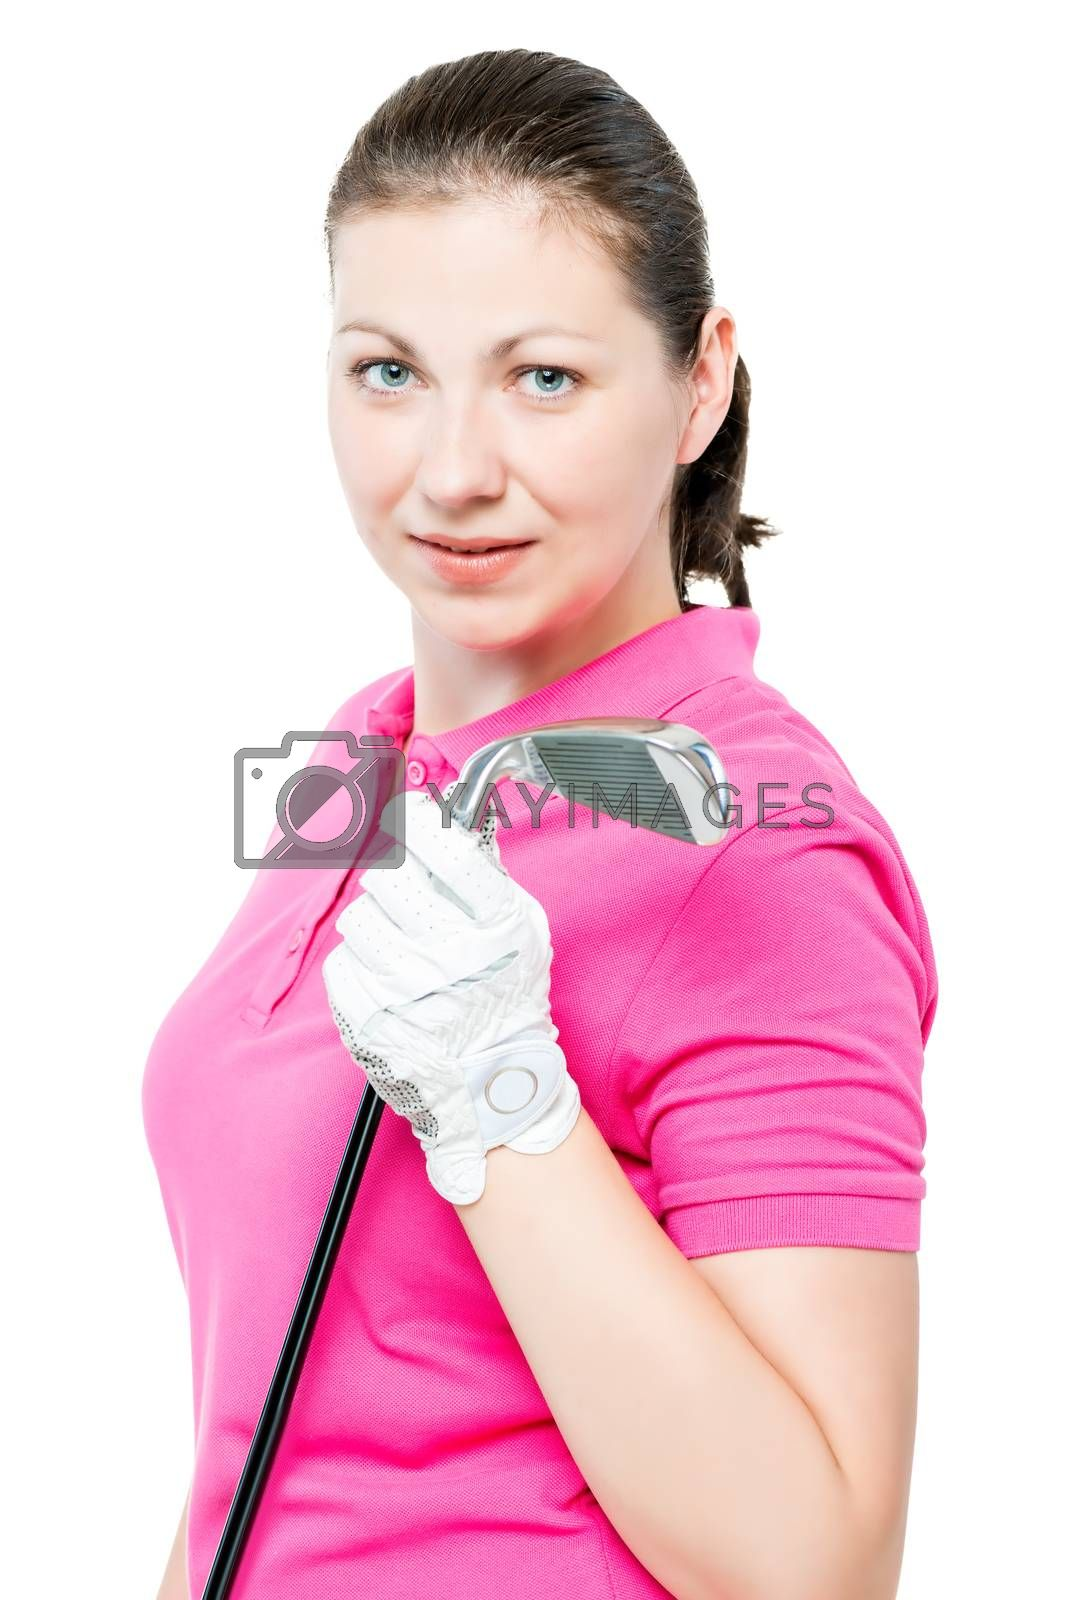 cute brunette has a hobby playing golf, portrait on a white background